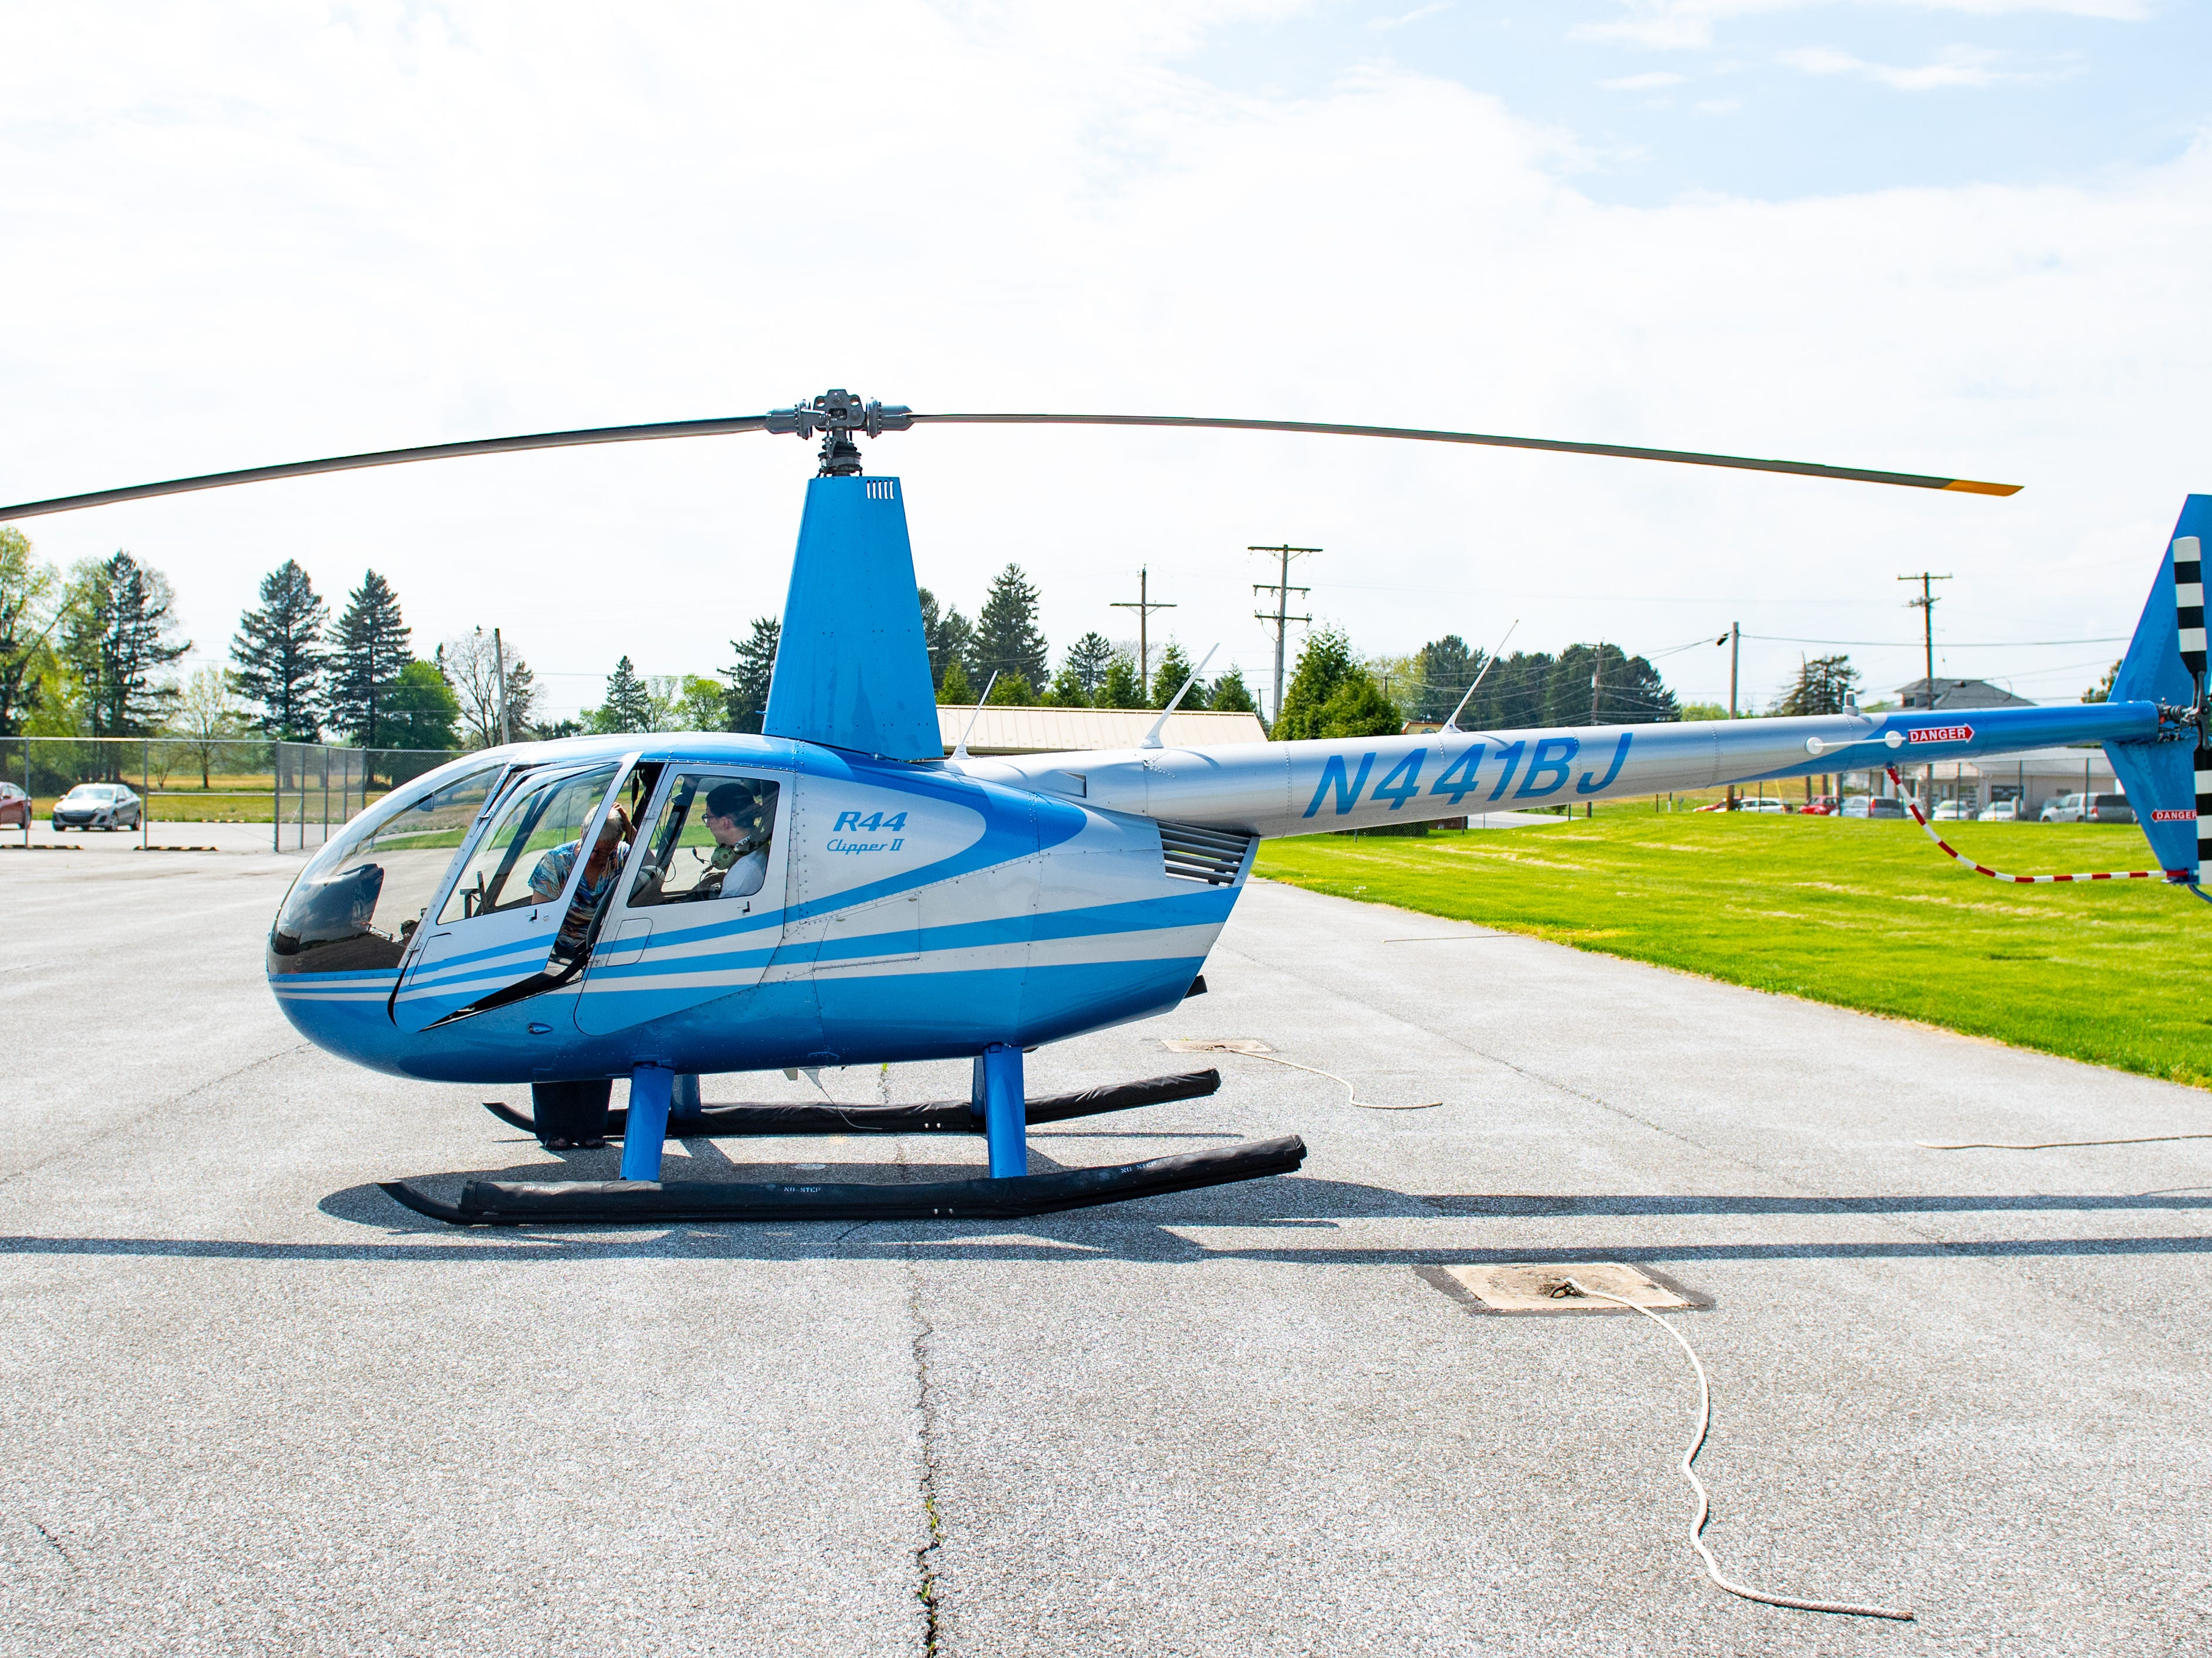 """The """"N441BJ"""" on the tail of the helicopter aren't just a collection of random letters and numbers. According to Judith Redlawsk, the one is for the first helicopter, the """"B"""" is for her husband Bernie and the """"J"""" for Judith, May 2, 2019."""